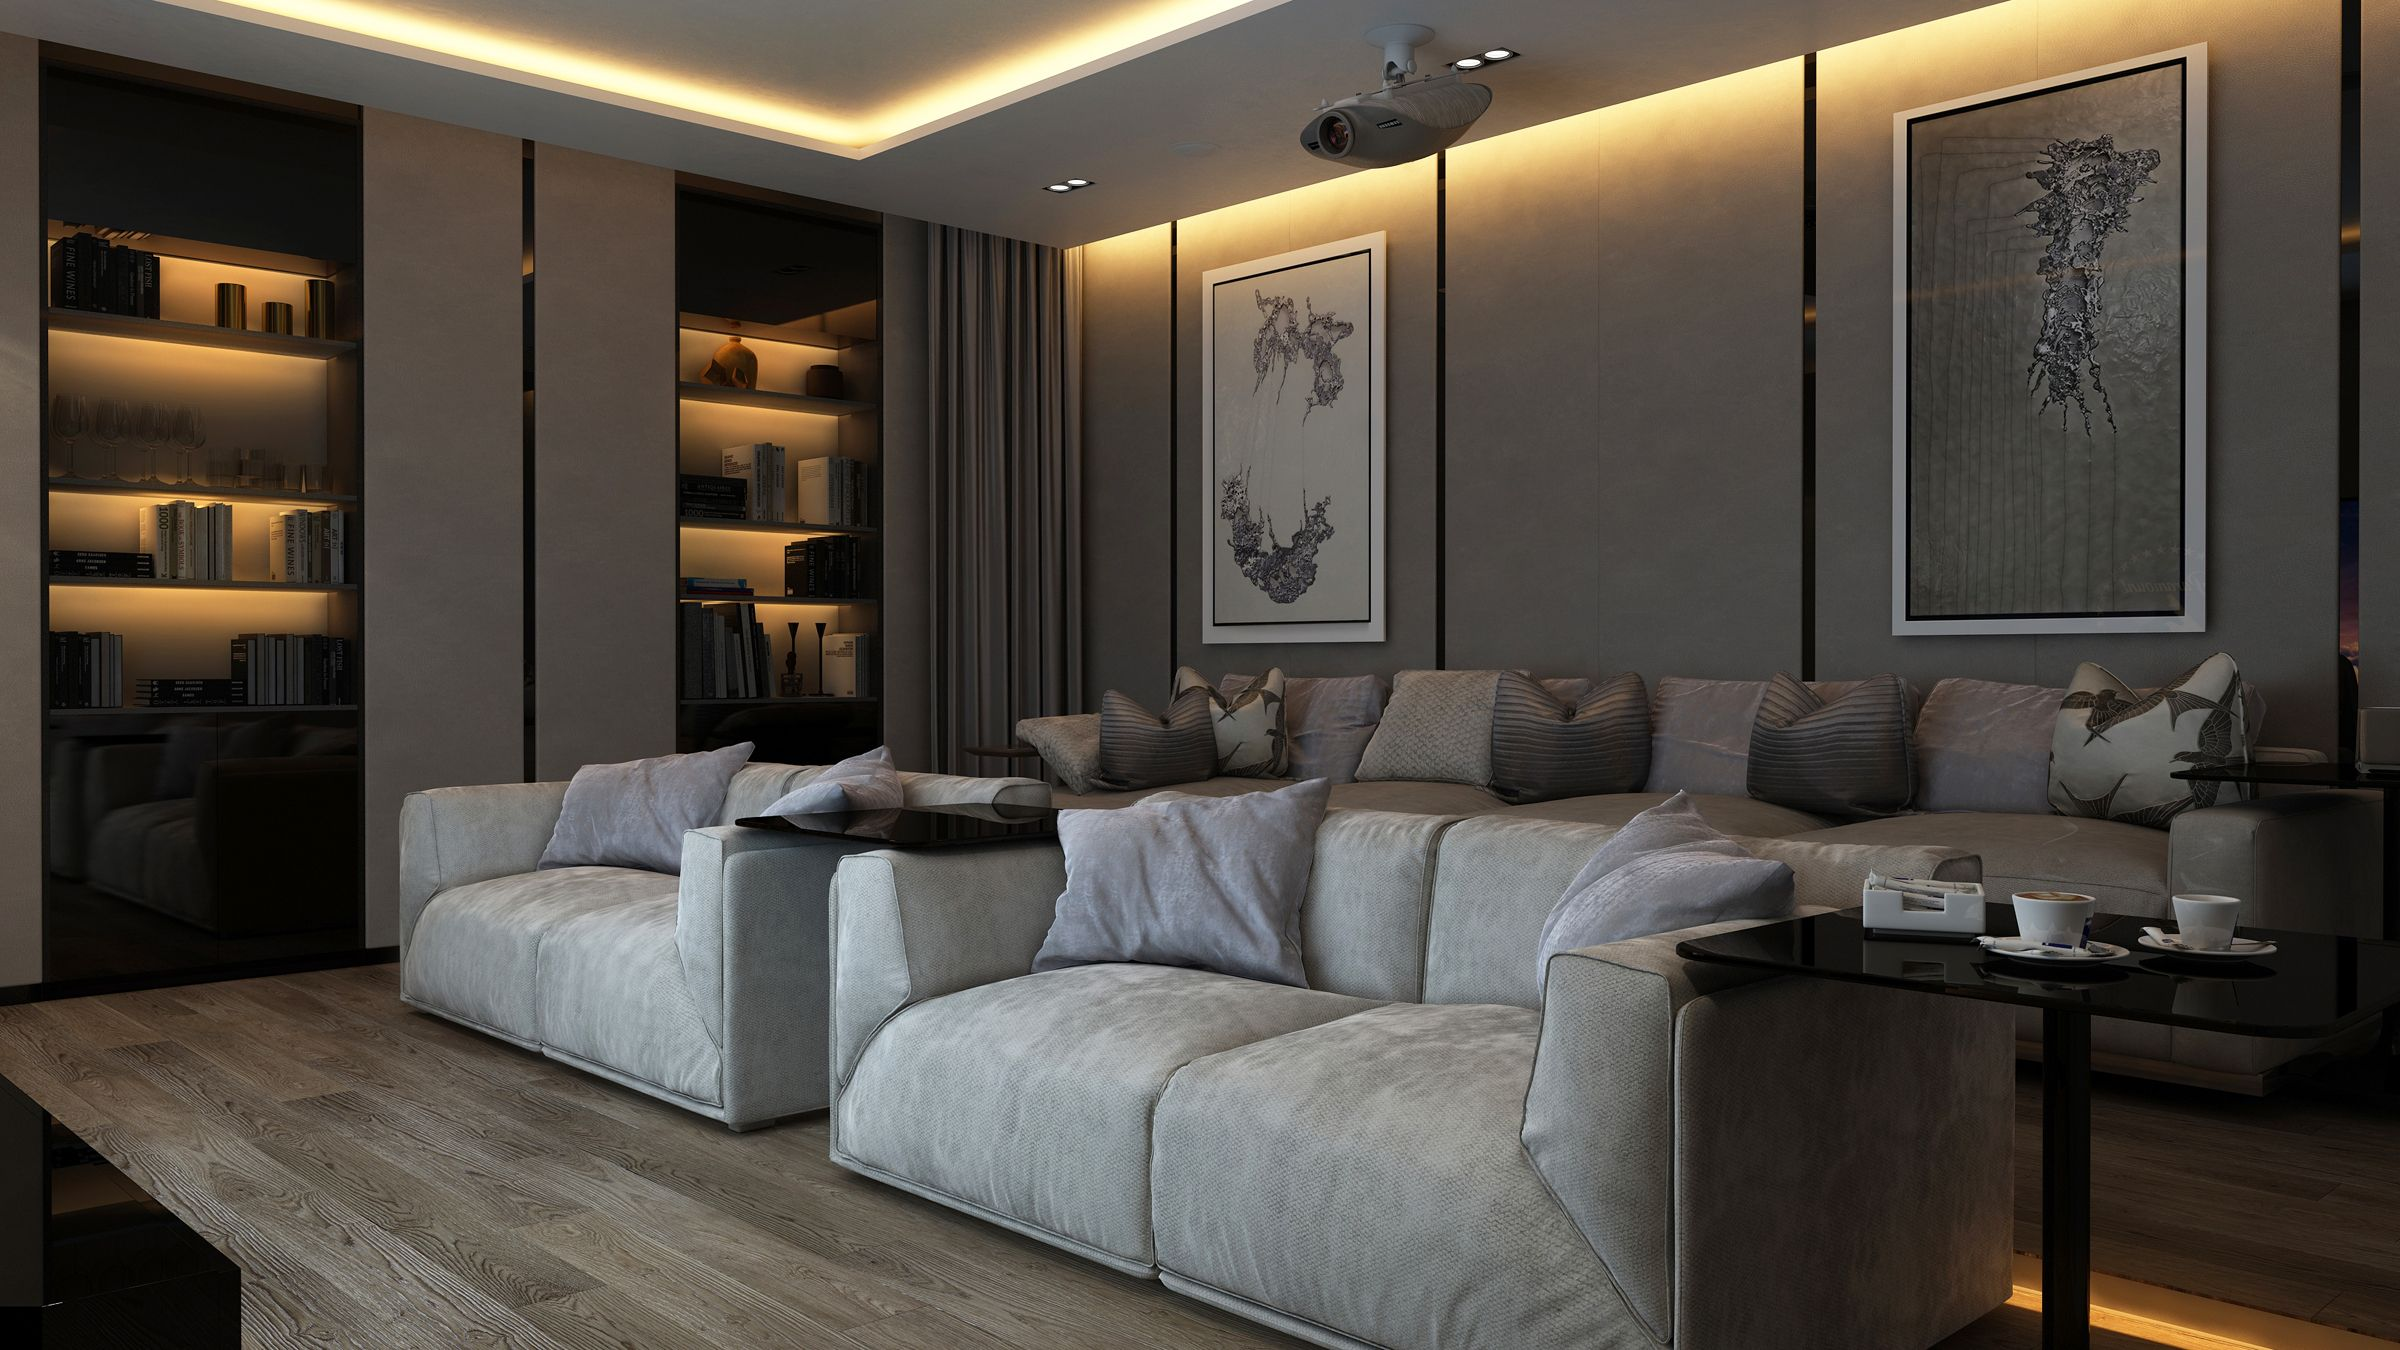 Design project cinema room interior